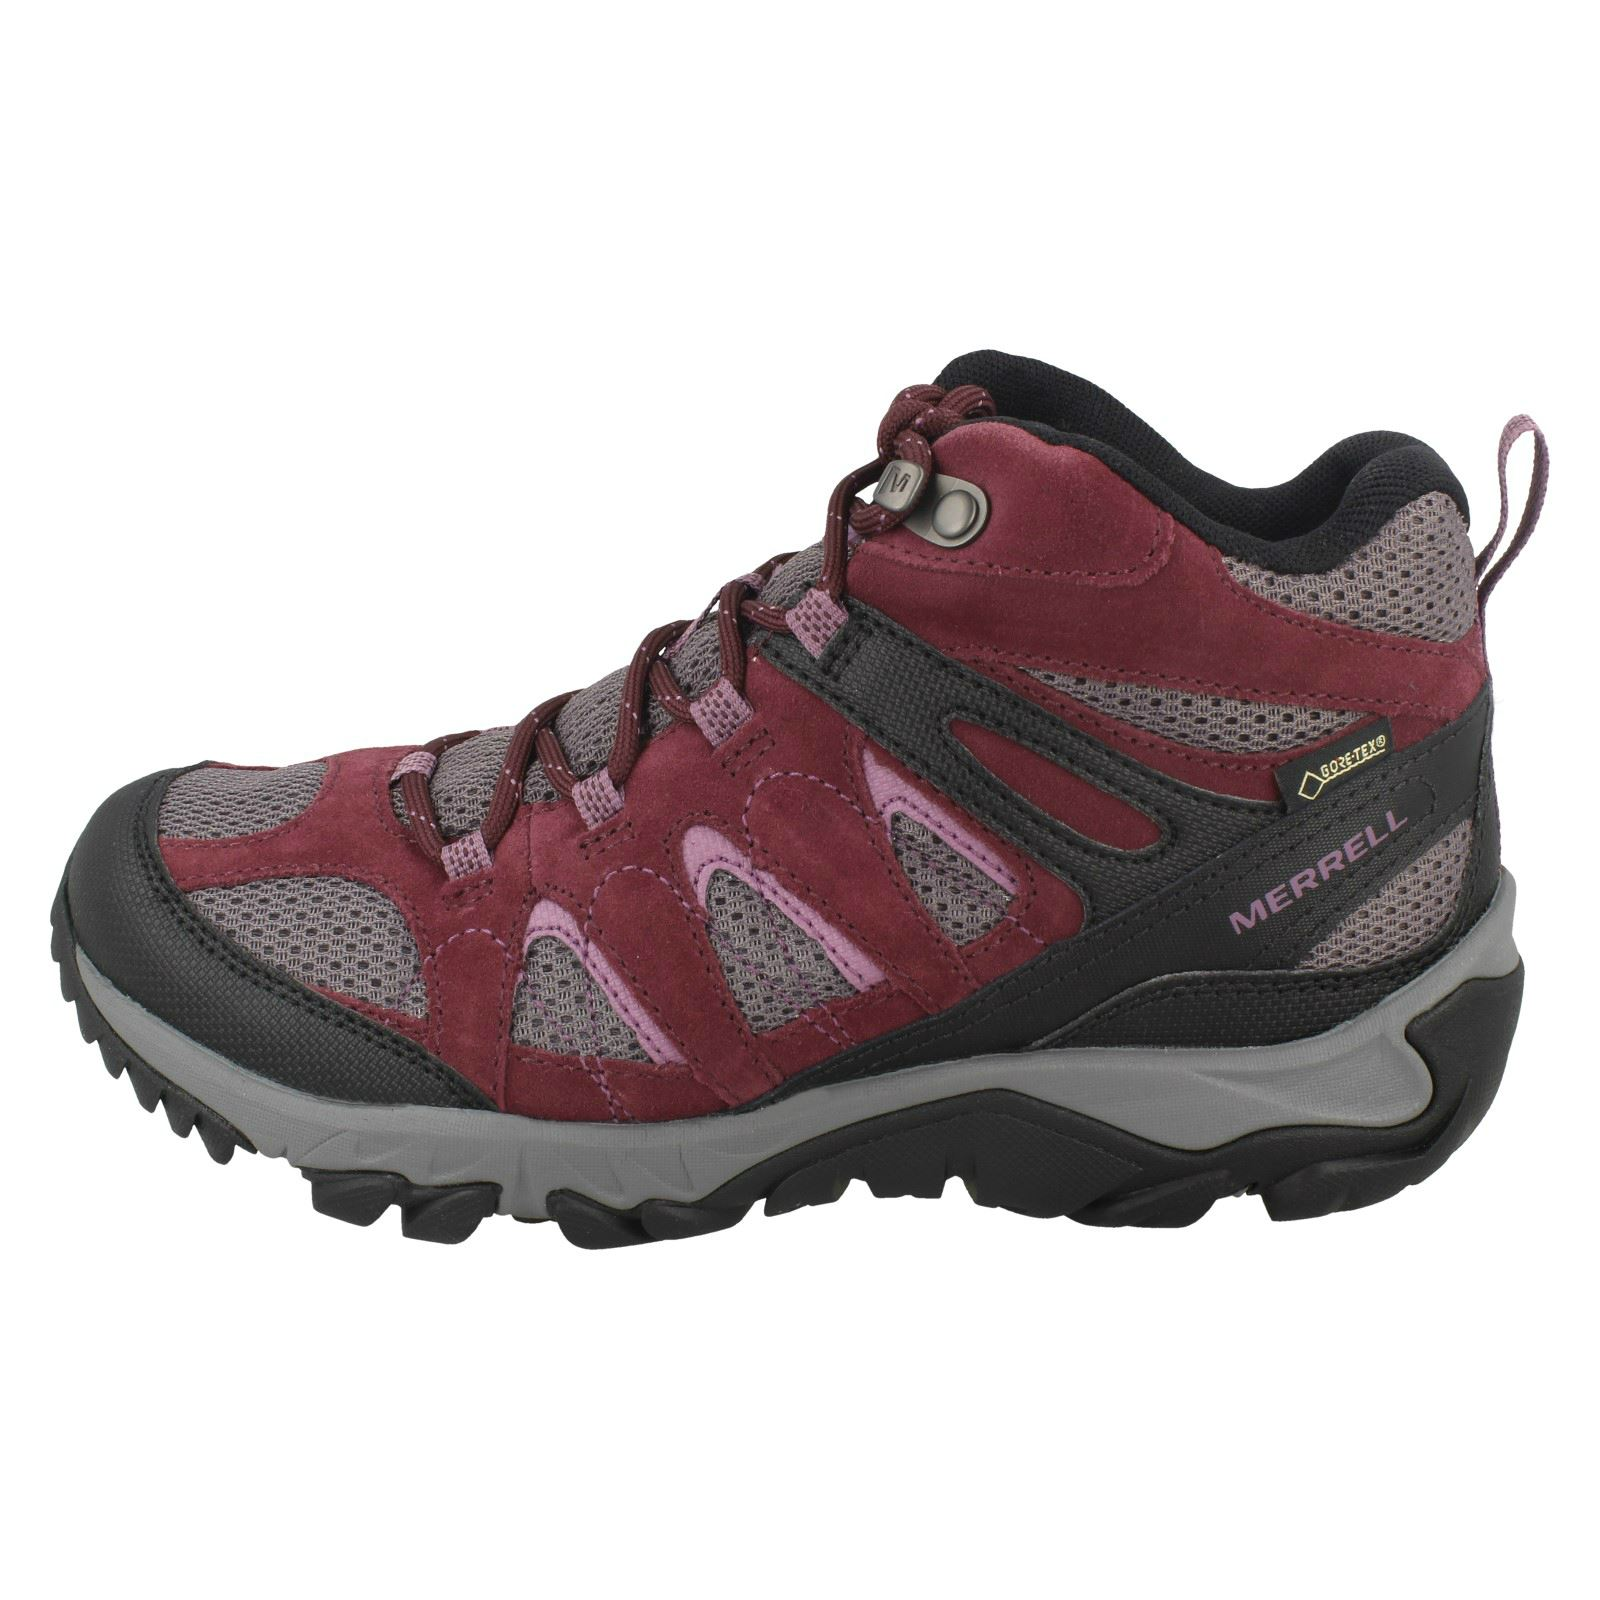 Ankle Mid Gtx J41070' Ladies 'outmost Details Merrell Boots Vent About VqSzMpU